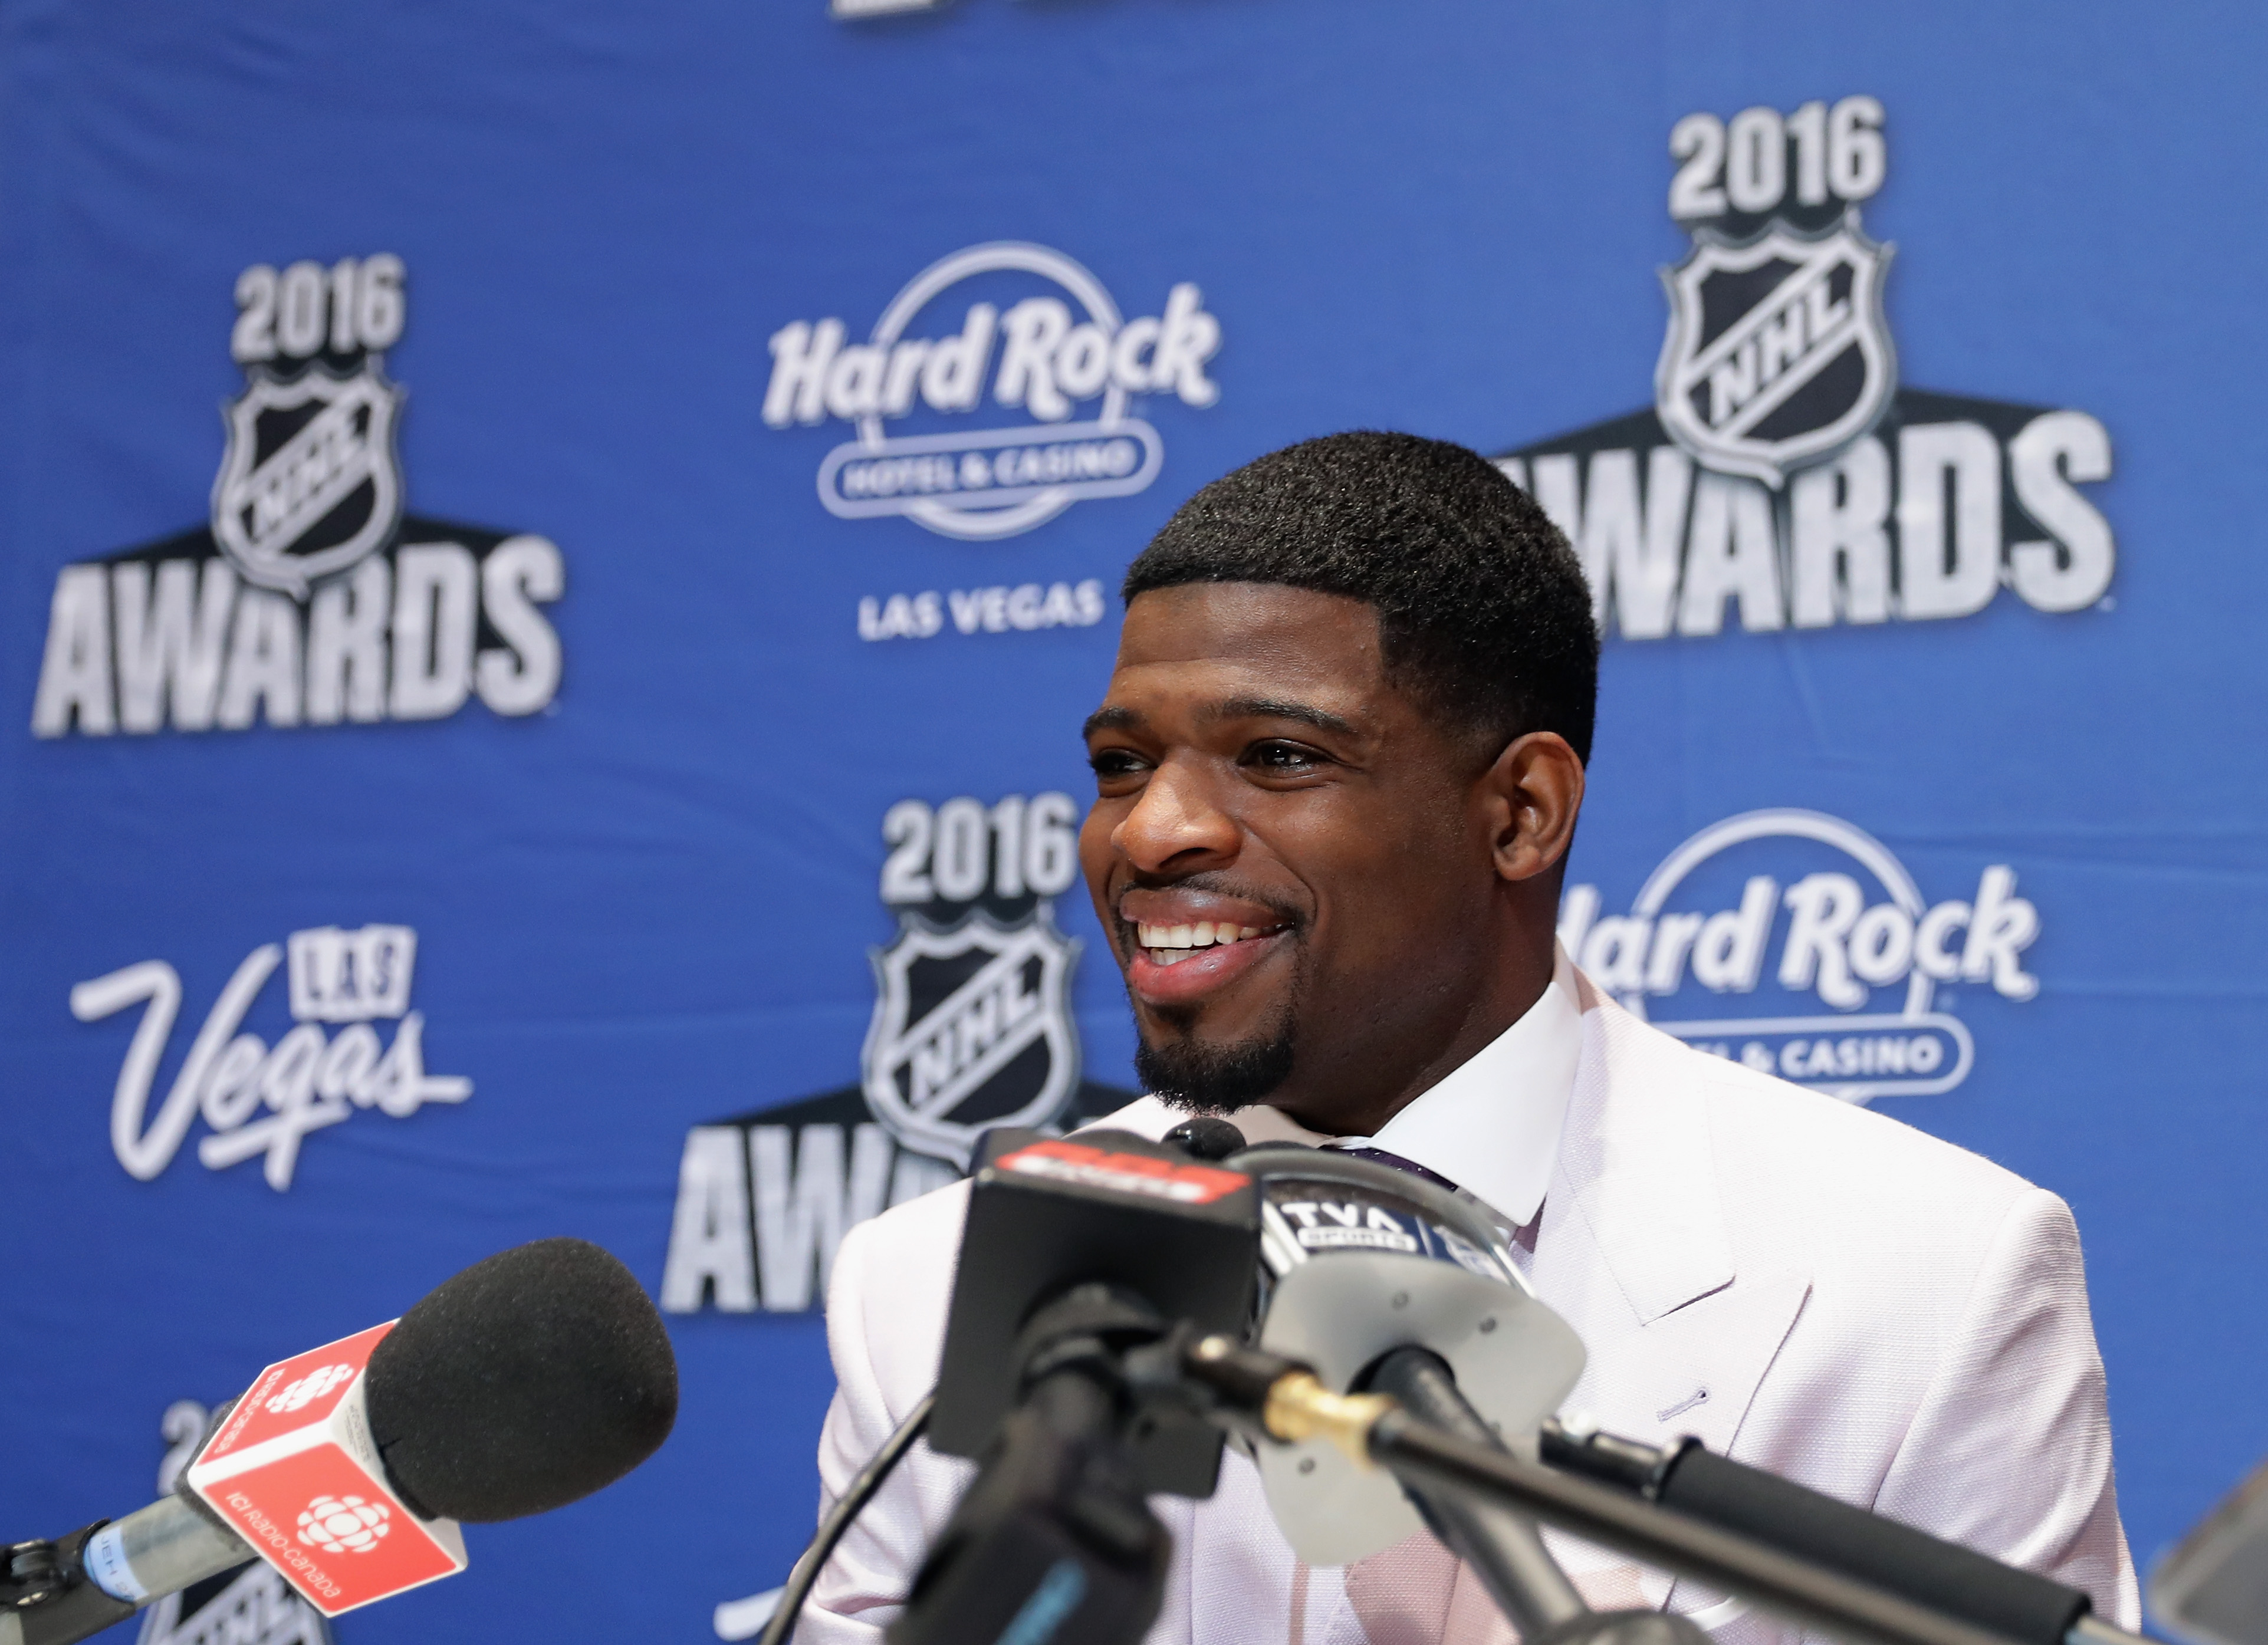 LAS VEGAS, NV - JUNE 21: P.K. Subban of the Montreal Canadiens speaks with the media during a press availability on June 21, 2016 at the Encore Ballroom in Las Vegas, Nevada. The 2016 NHL Award Ceremony will by held on June 22 at the Encore Theater at Wynn Las Vegas. (Photo by Bruce Bennett/Getty Images)